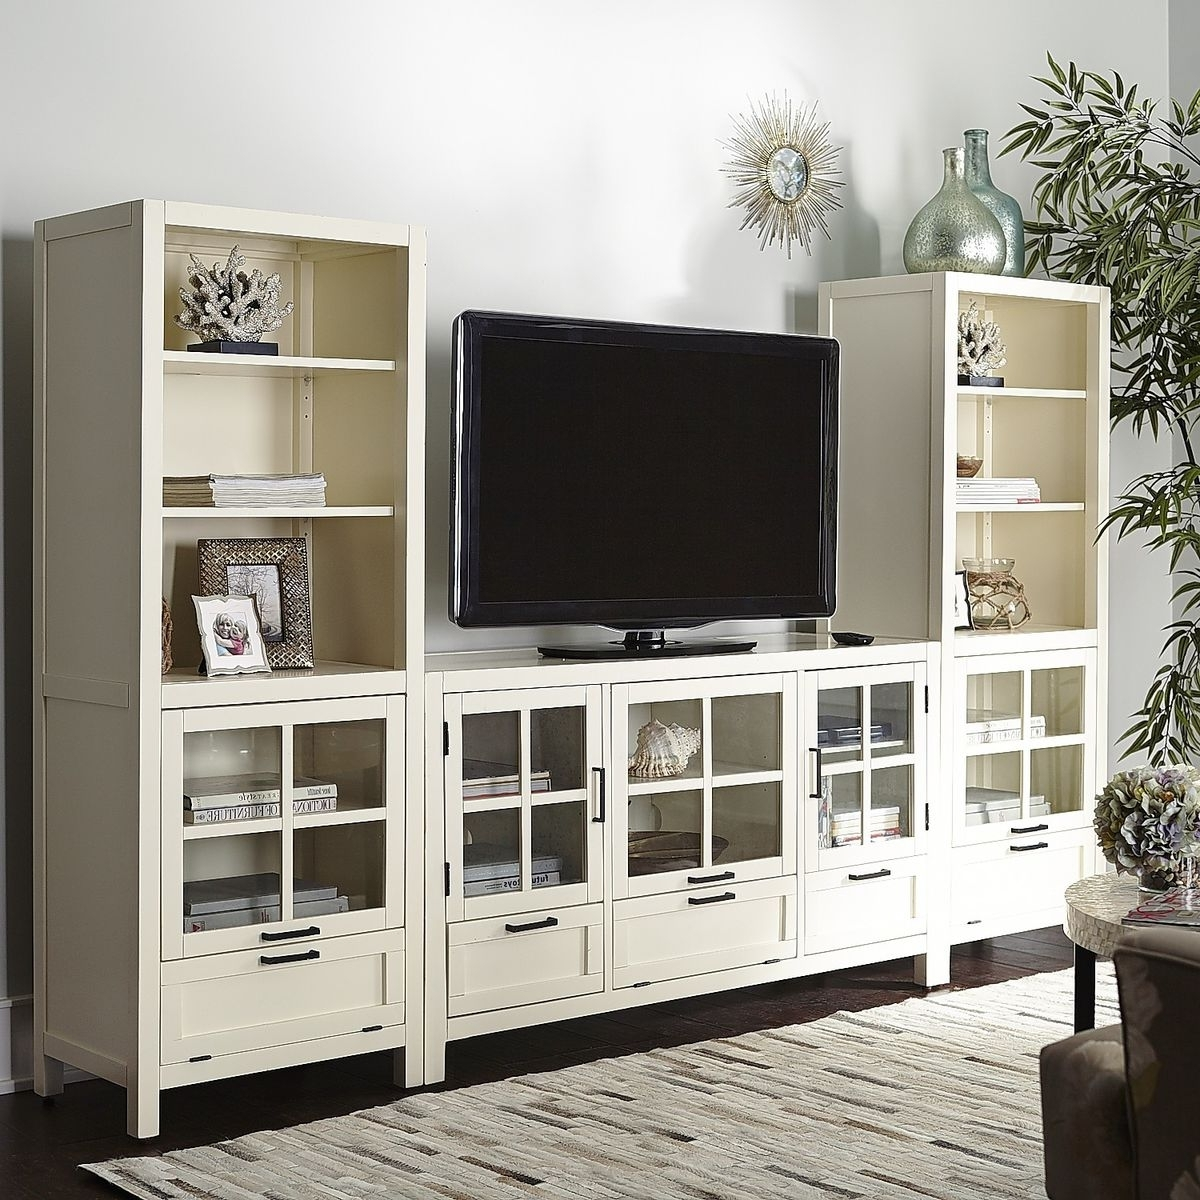 Most Popular Media Bookcases With Regard To Sausalito Bookcase & Media Tower – Antique White (View 2 of 15)